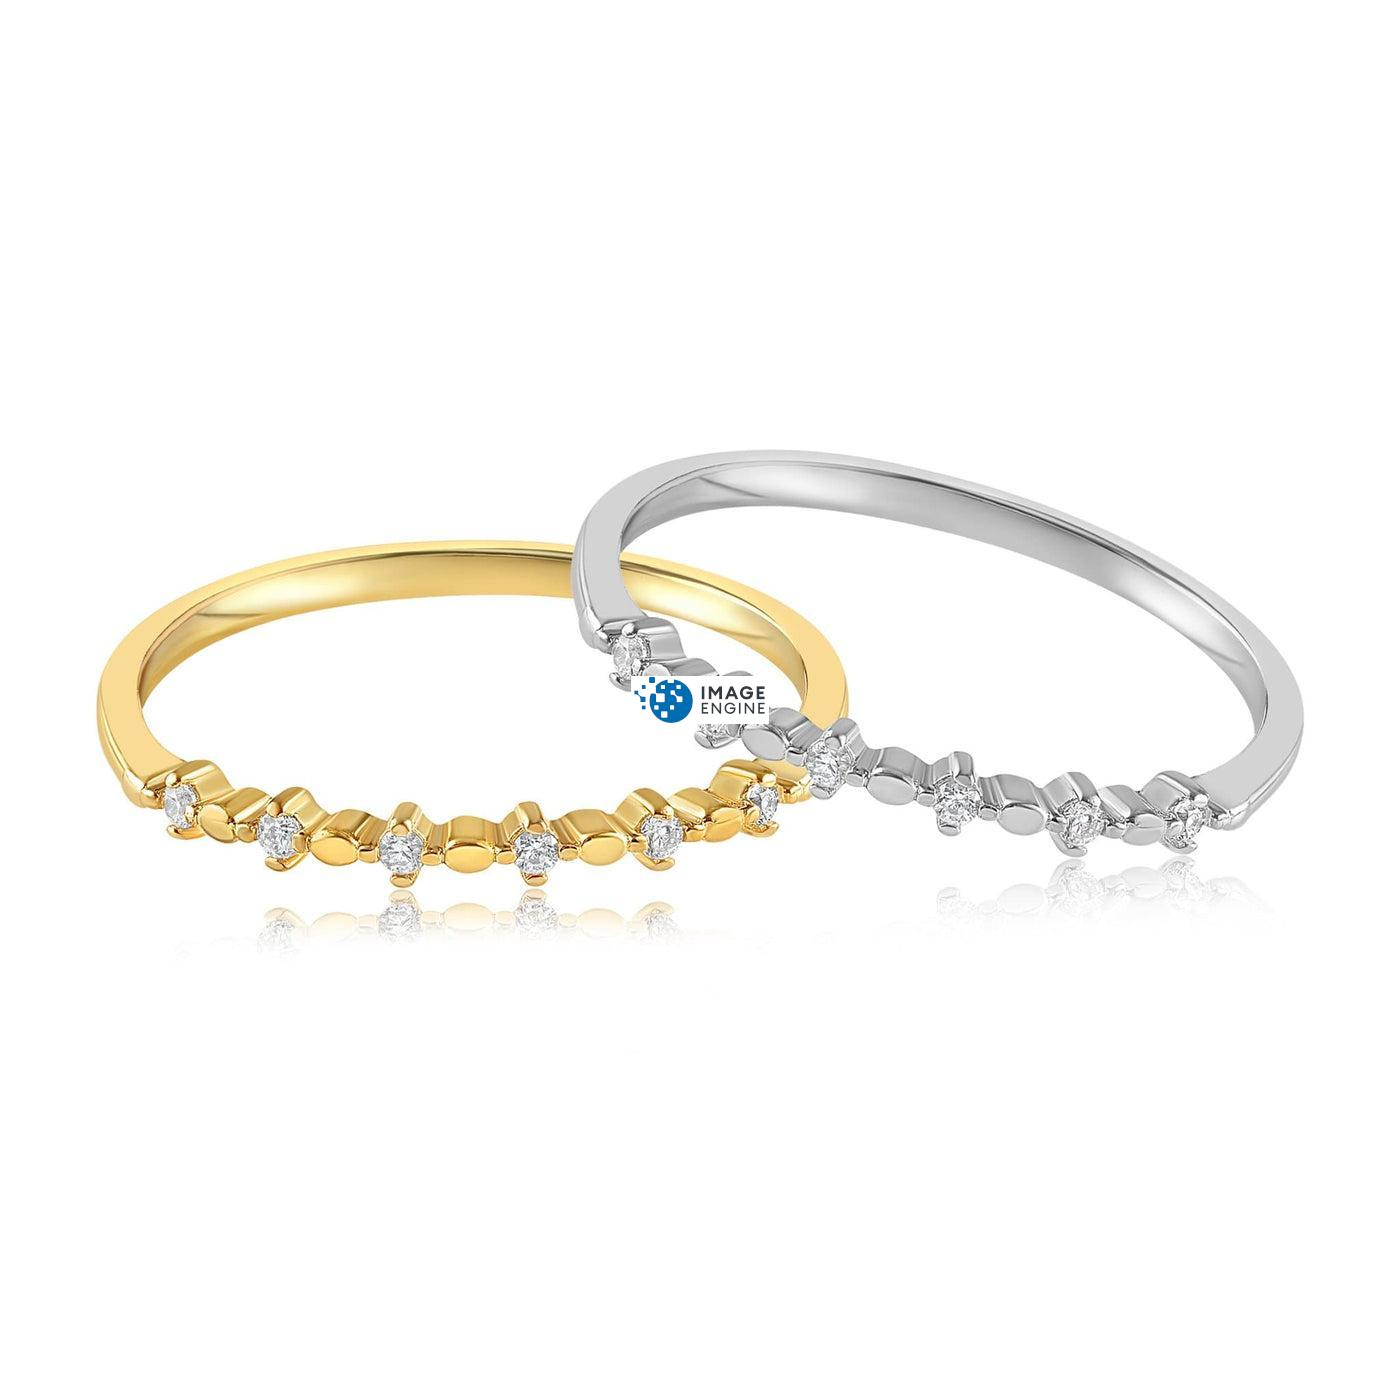 Nicolette Stackable Ring - Front View Side by Side - 18K Yellow Gold Vermeil and 925 Sterling Silver